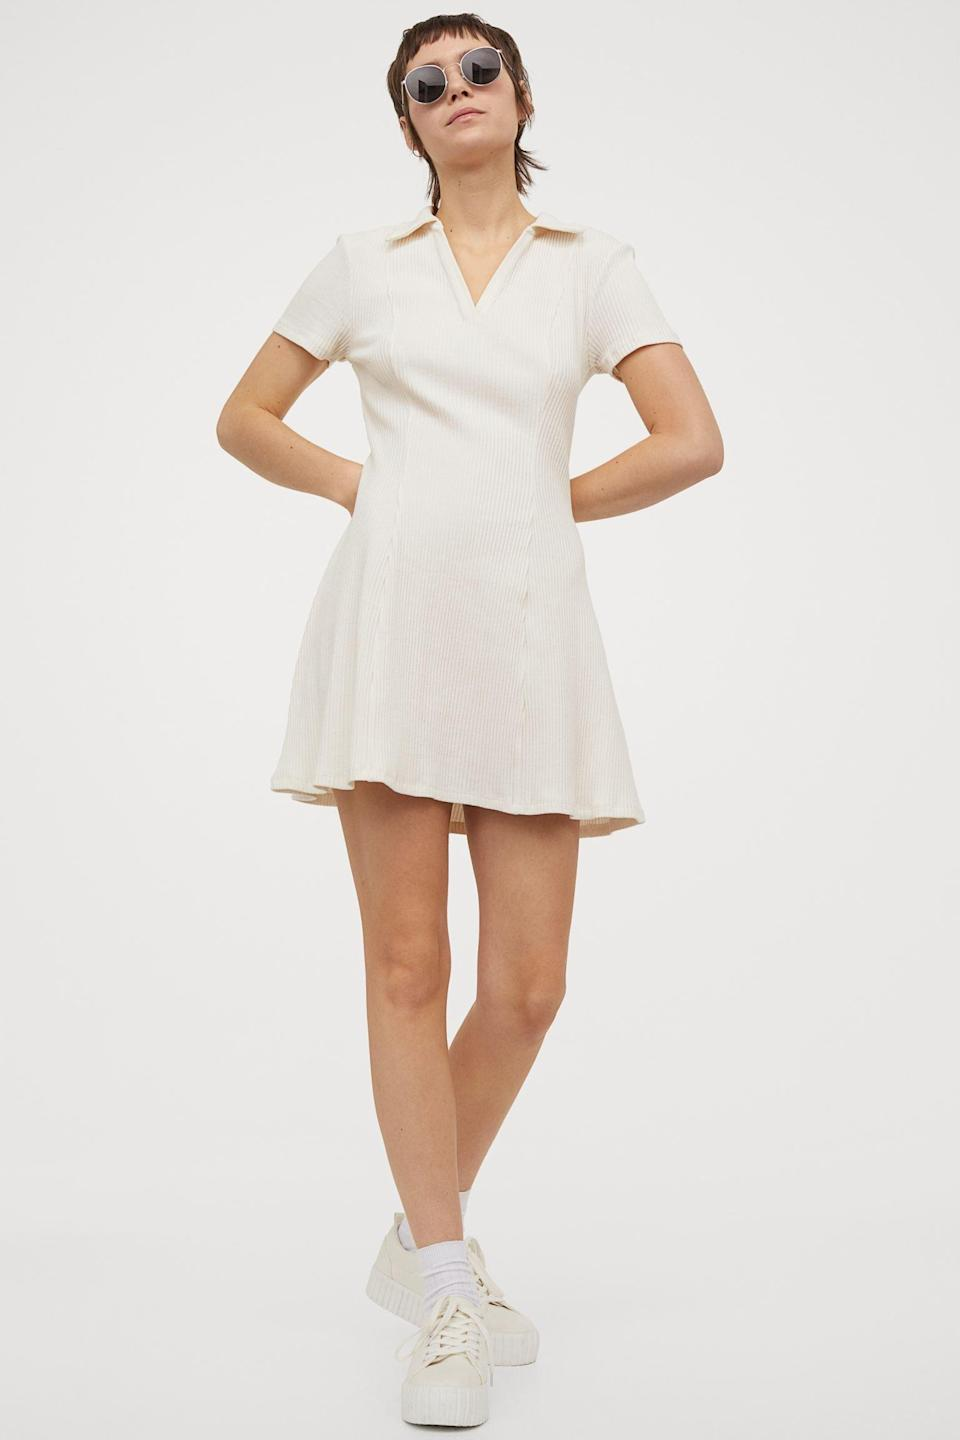 <p>Achieve the perfect sporty chic look when you pair this <span>Ribbed Jersey Dress</span> ($25) with your favorite comfortable sneakers.</p>